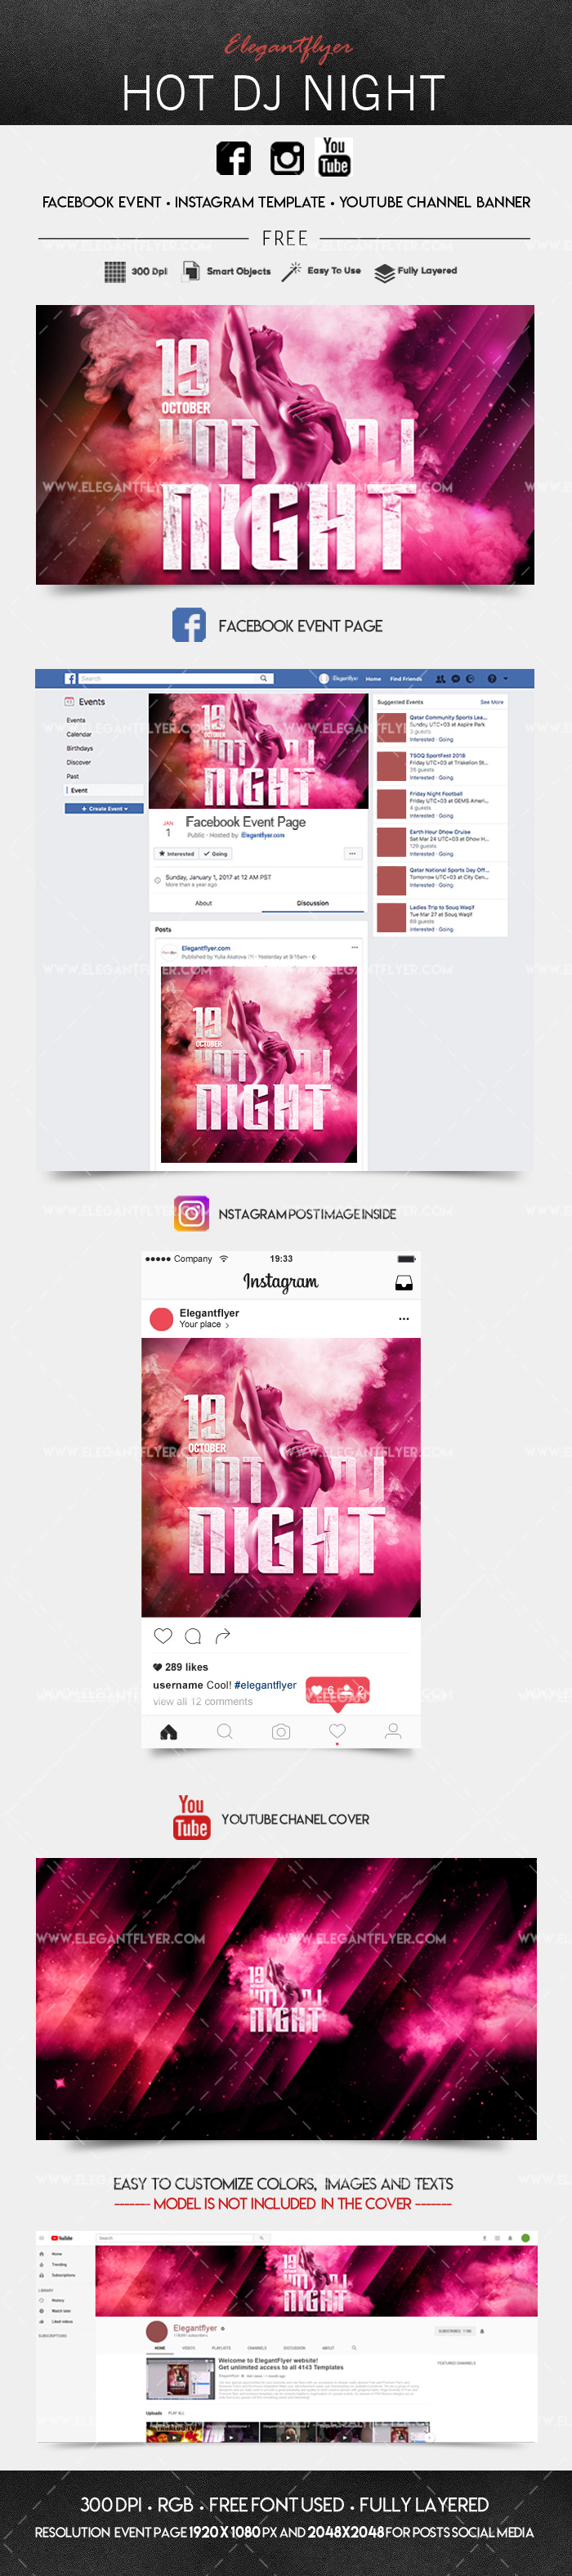 Hot Dj Night – Free Facebook Event + Instagram template + Youtube Channel Banner